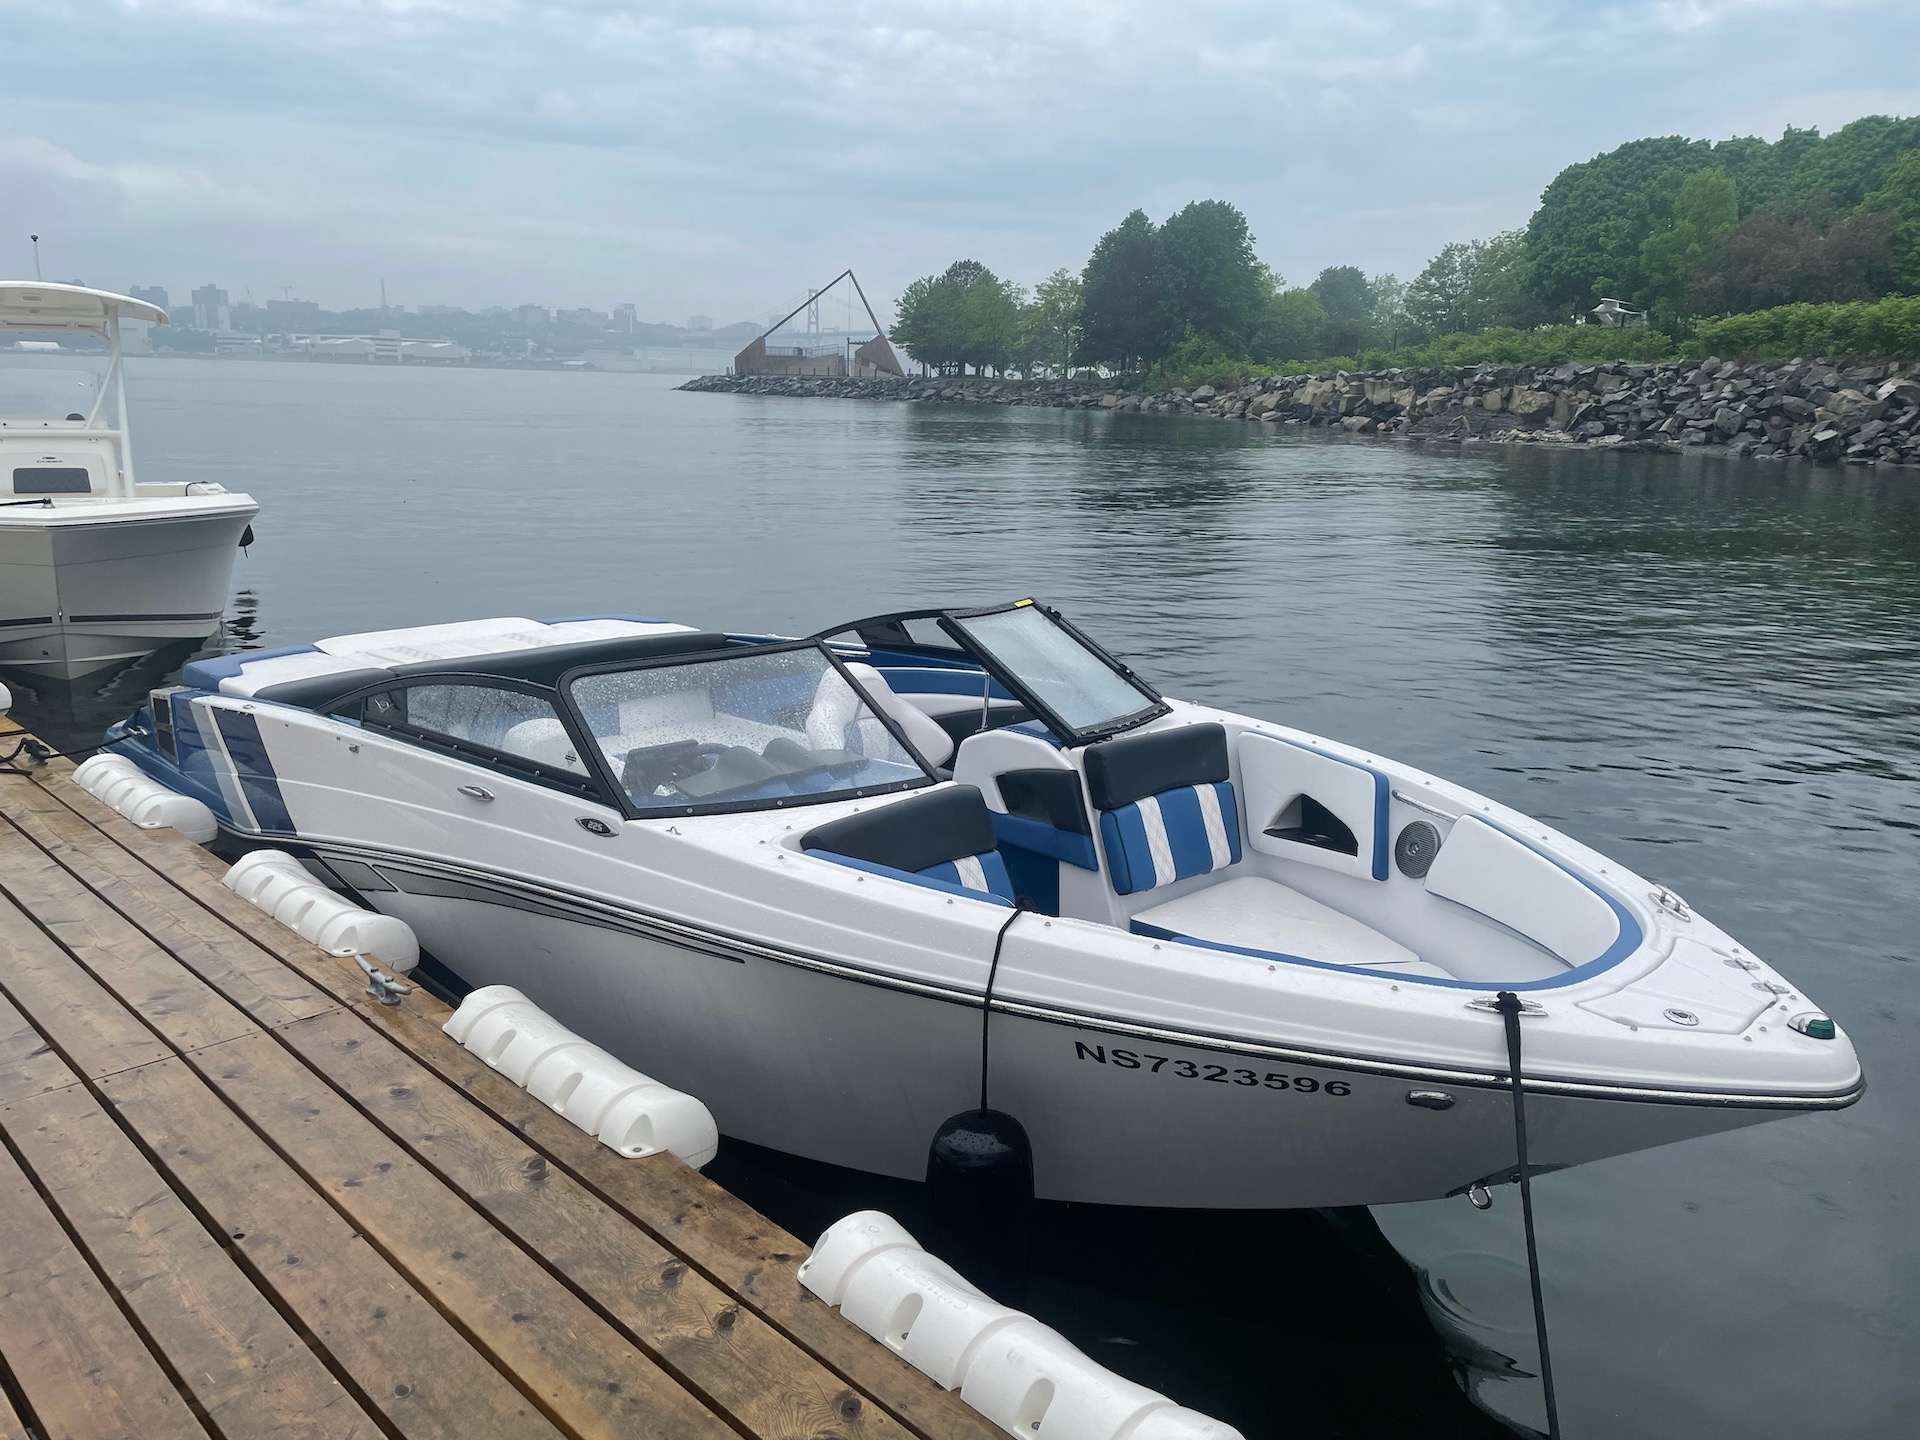 Queen of the Wharf/Glastron GTS 225 Bowrider